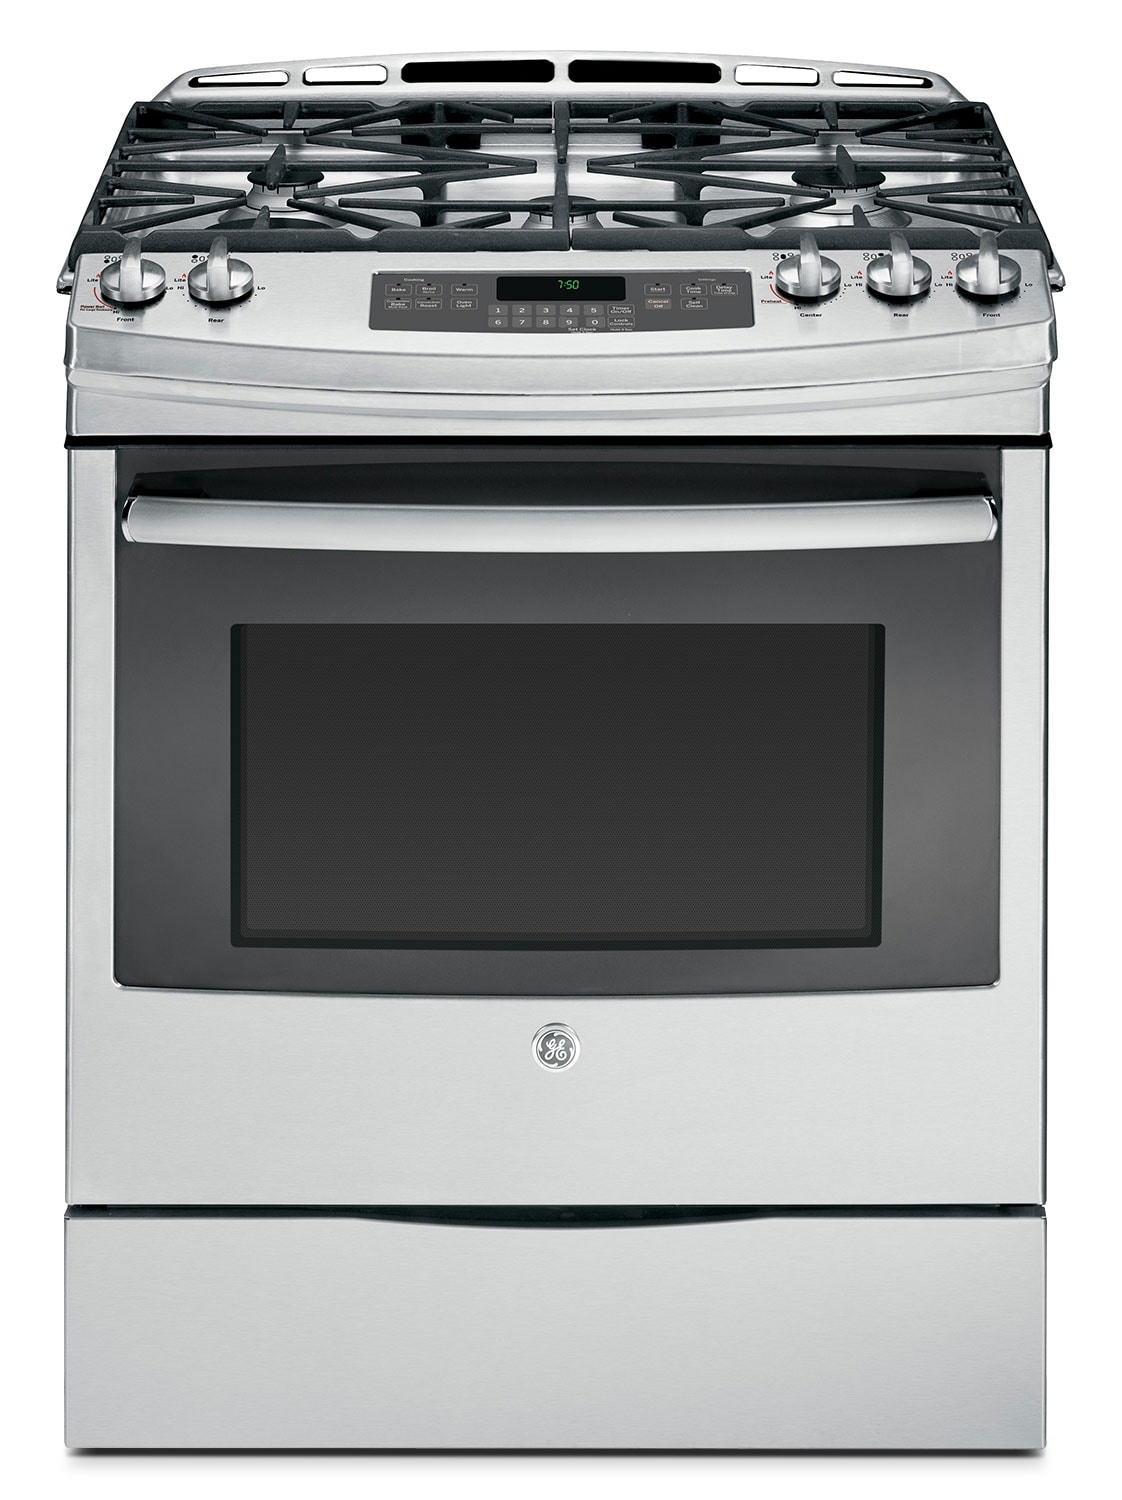 GE Stainless Steel Slide-In Gas Convection Range (5.4 Cu. Ft.) - JCGS750SEFSS